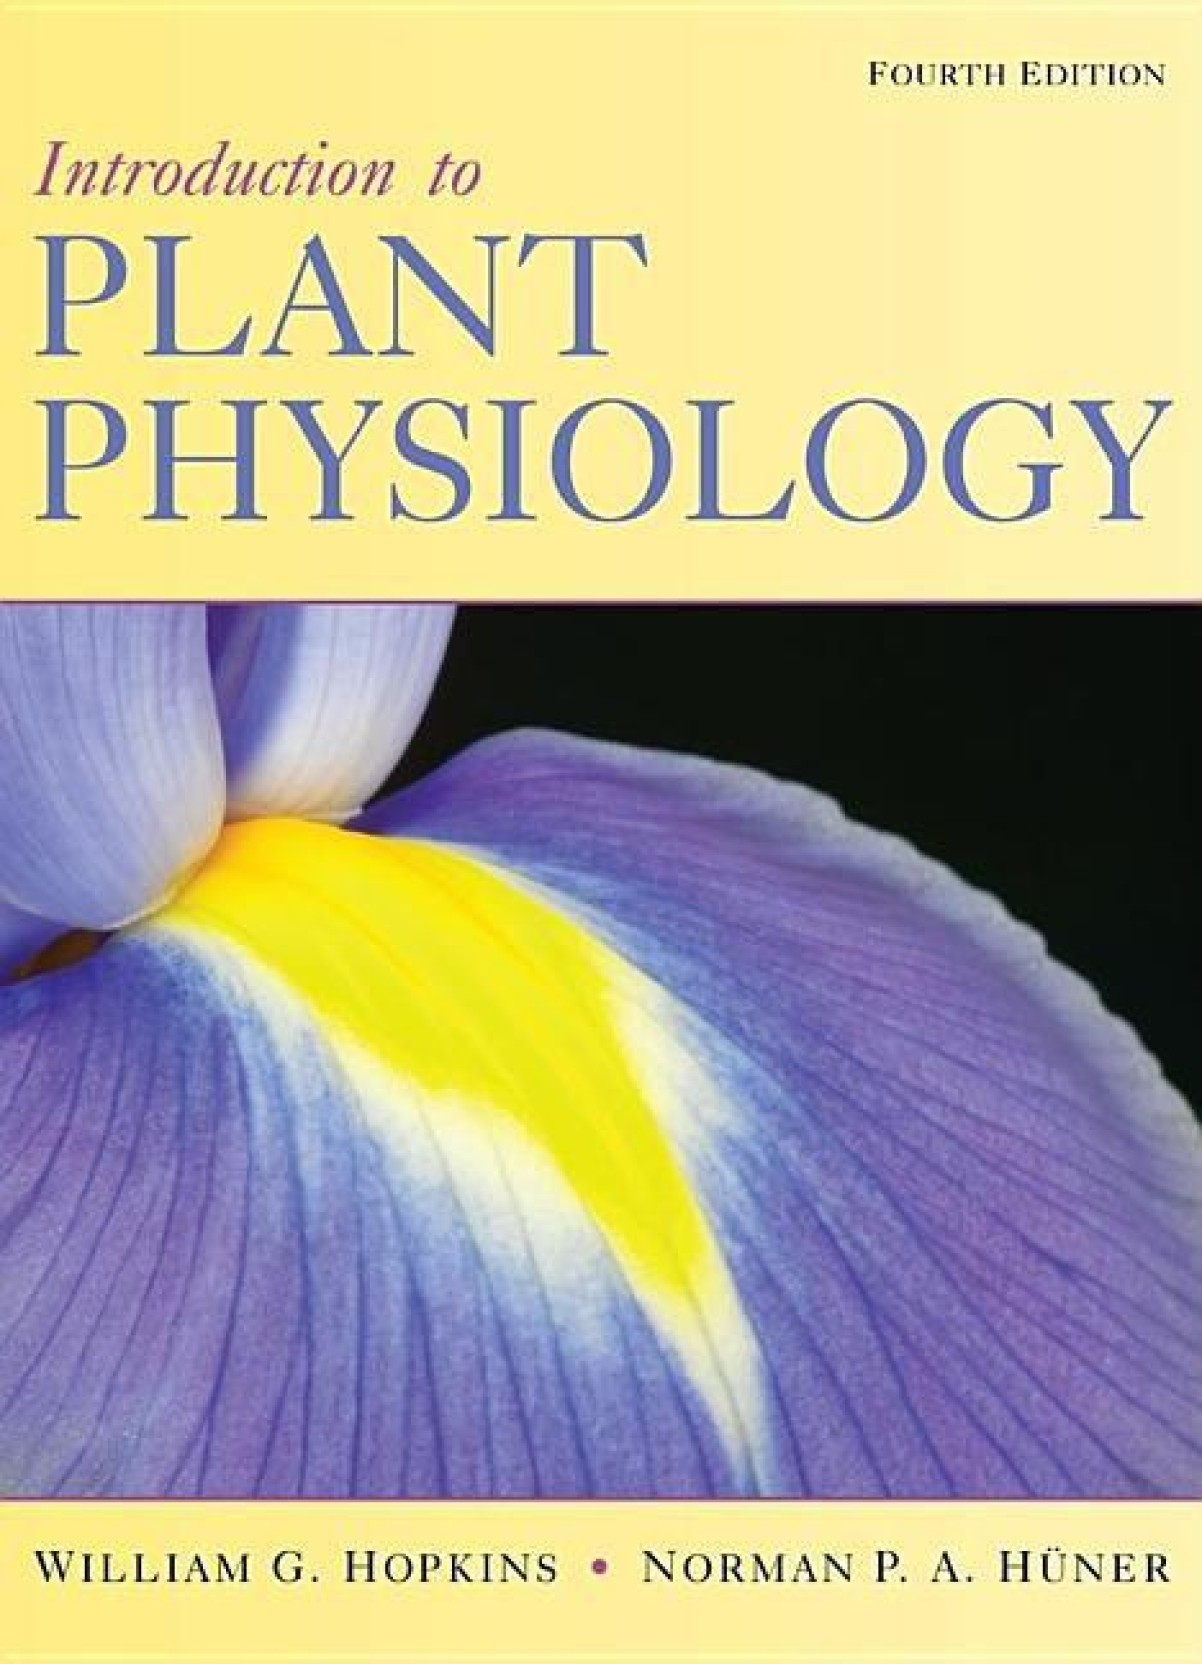 Image result for introduction to plant physiology 4th edition